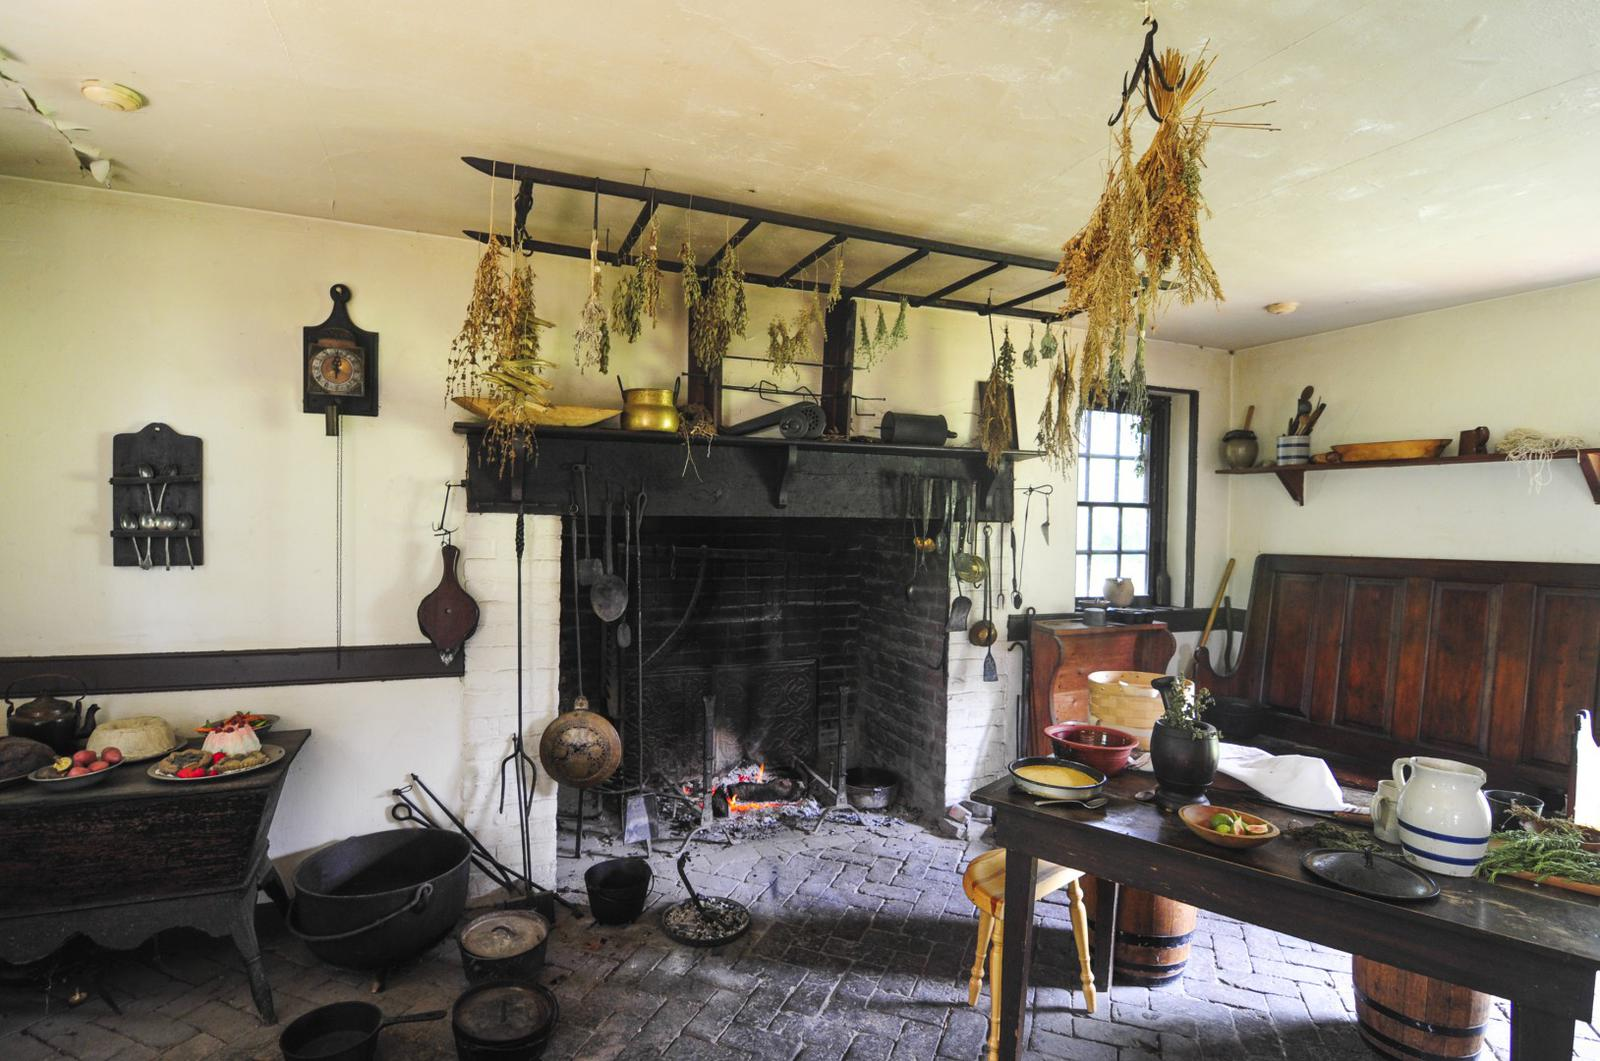 George Washington's home - how cozy!